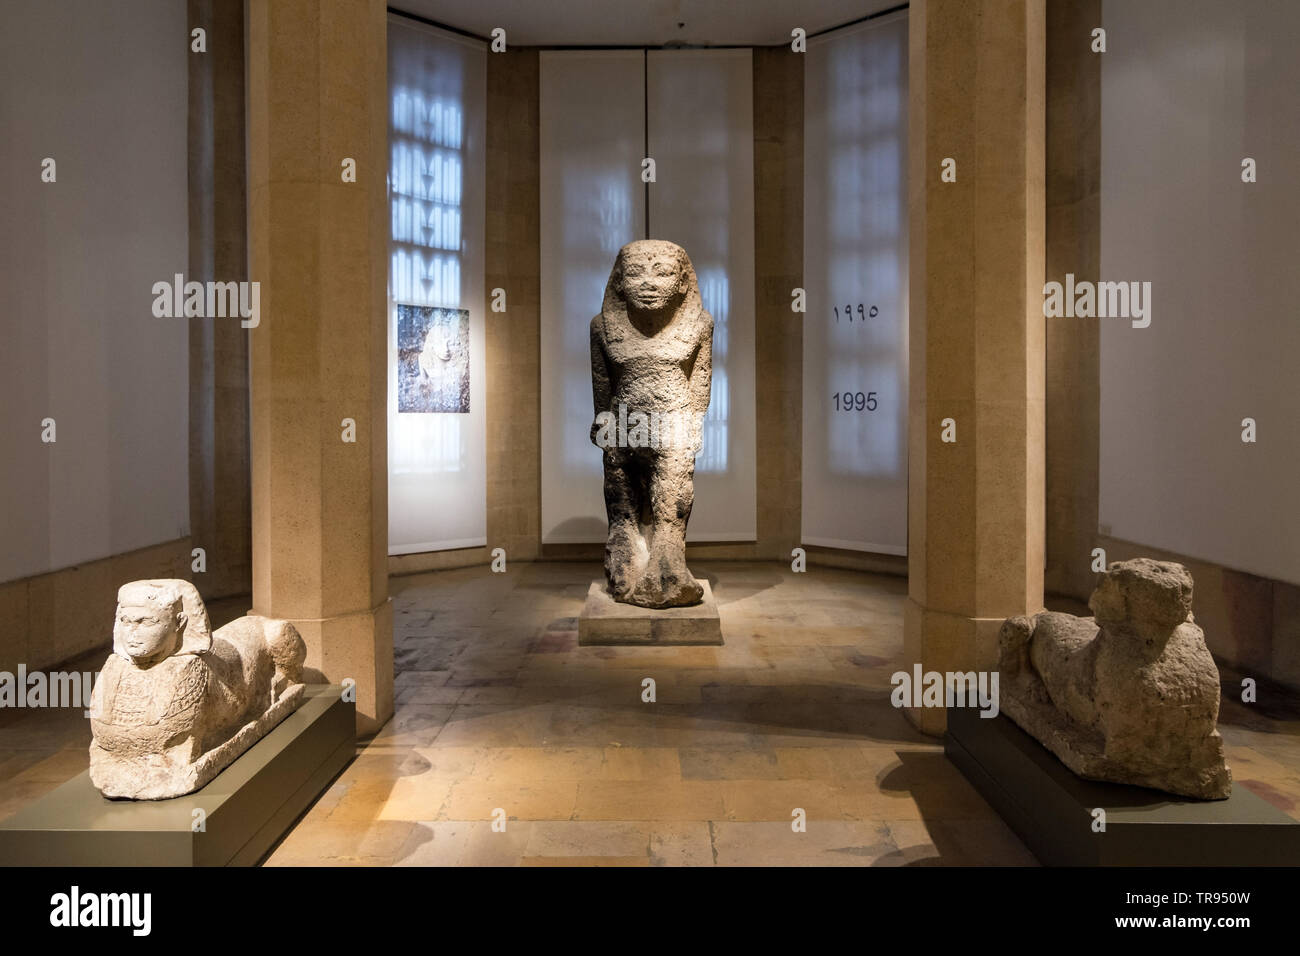 National Museum of Beirut, Lebanon Stock Photo: 255283753 - Alamy